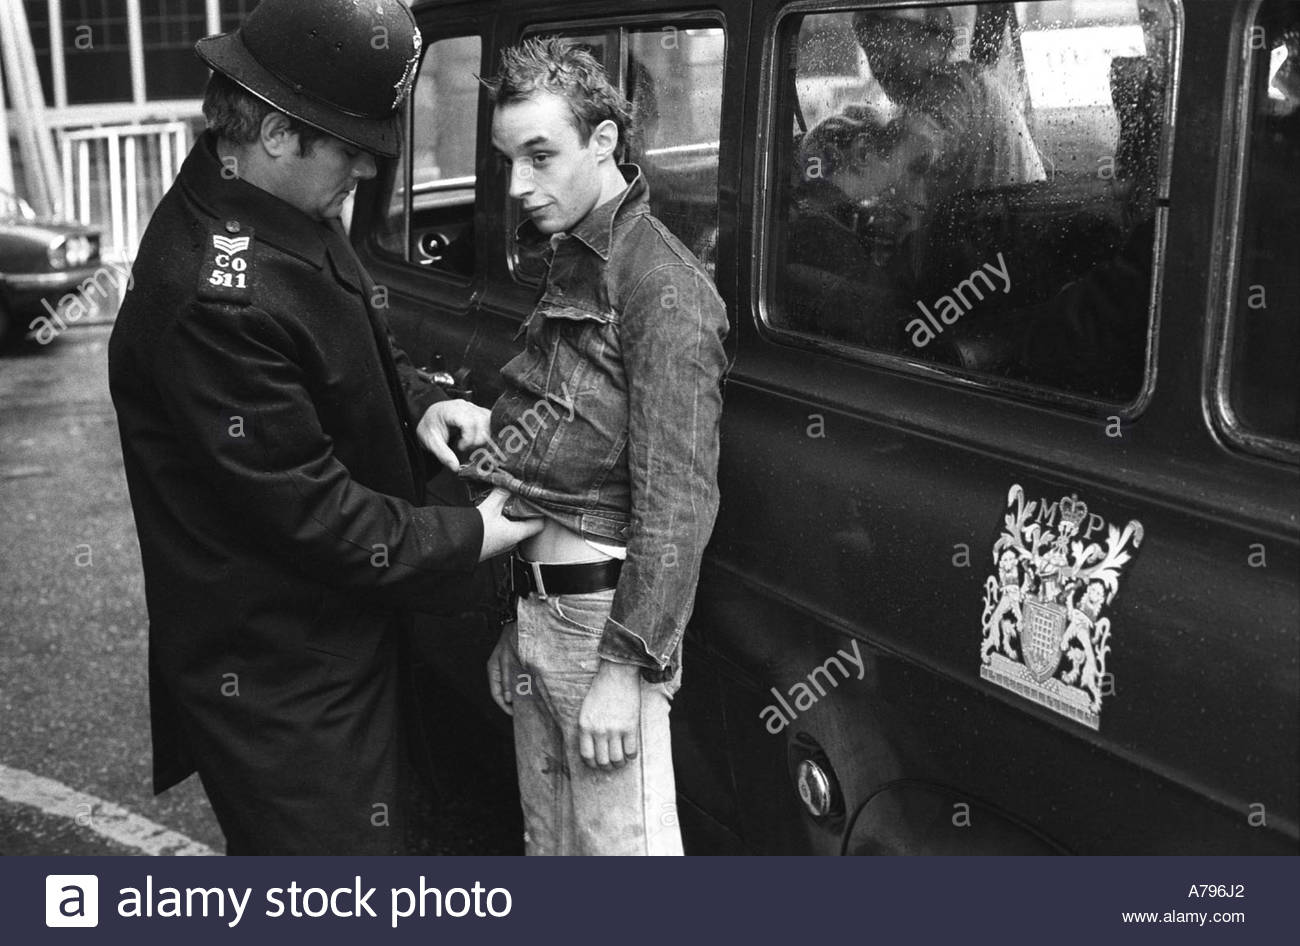 SPG Special Patrol Group  Policeman arrests, Stop  and Search a Punk in the Kings Road Chelsea  London England 1977 - Stock Image